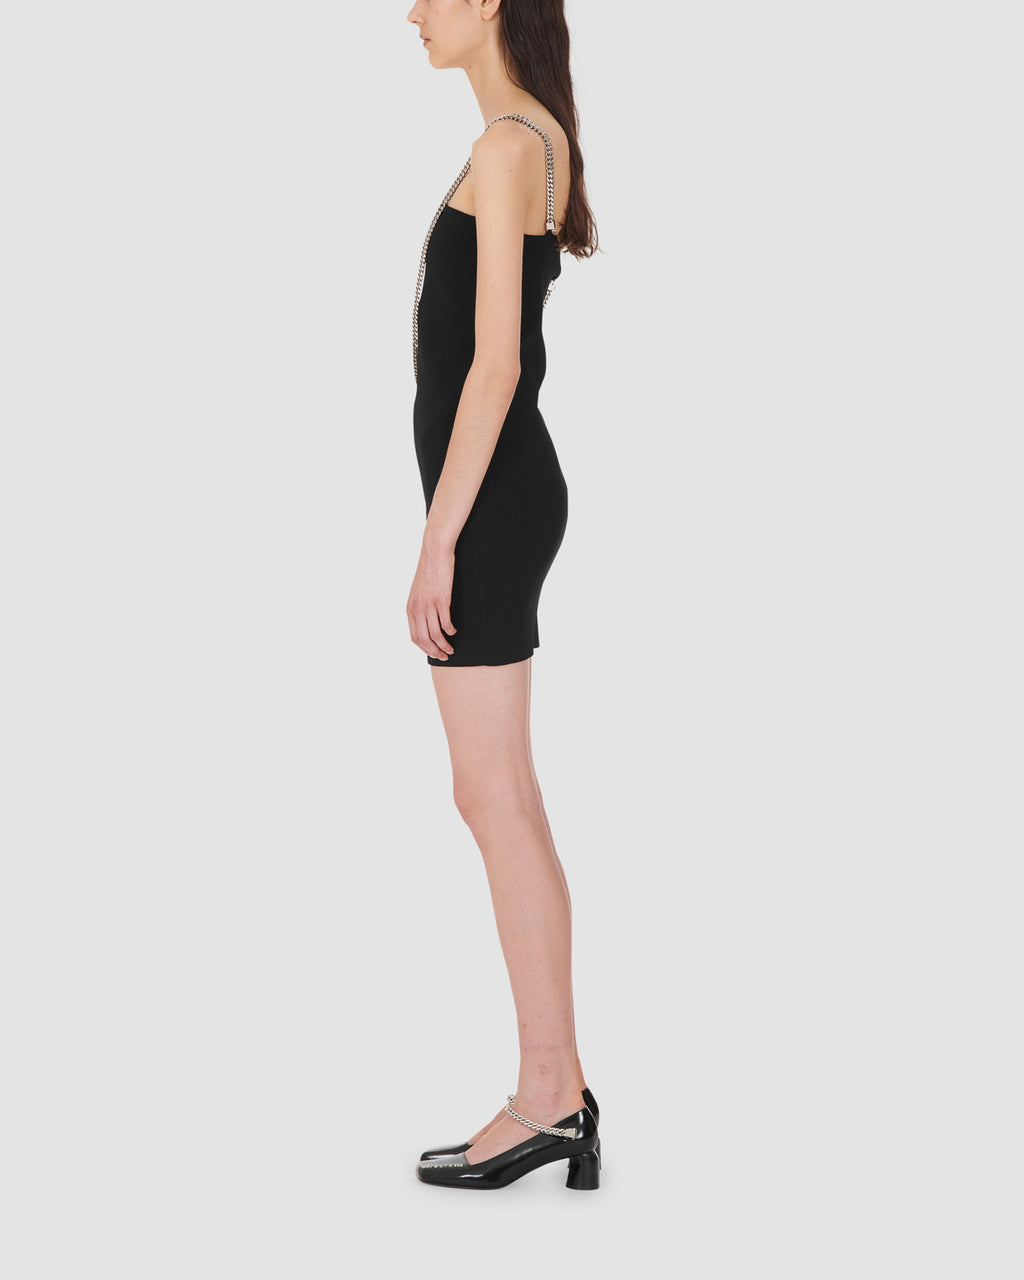 1017 ALYX 9SM | CUBIX KNIT DRESS | Dress | Black, Dresses, Google Shopping, KNITWEAR, S20, S20 Drop II, Woman, WOMEN